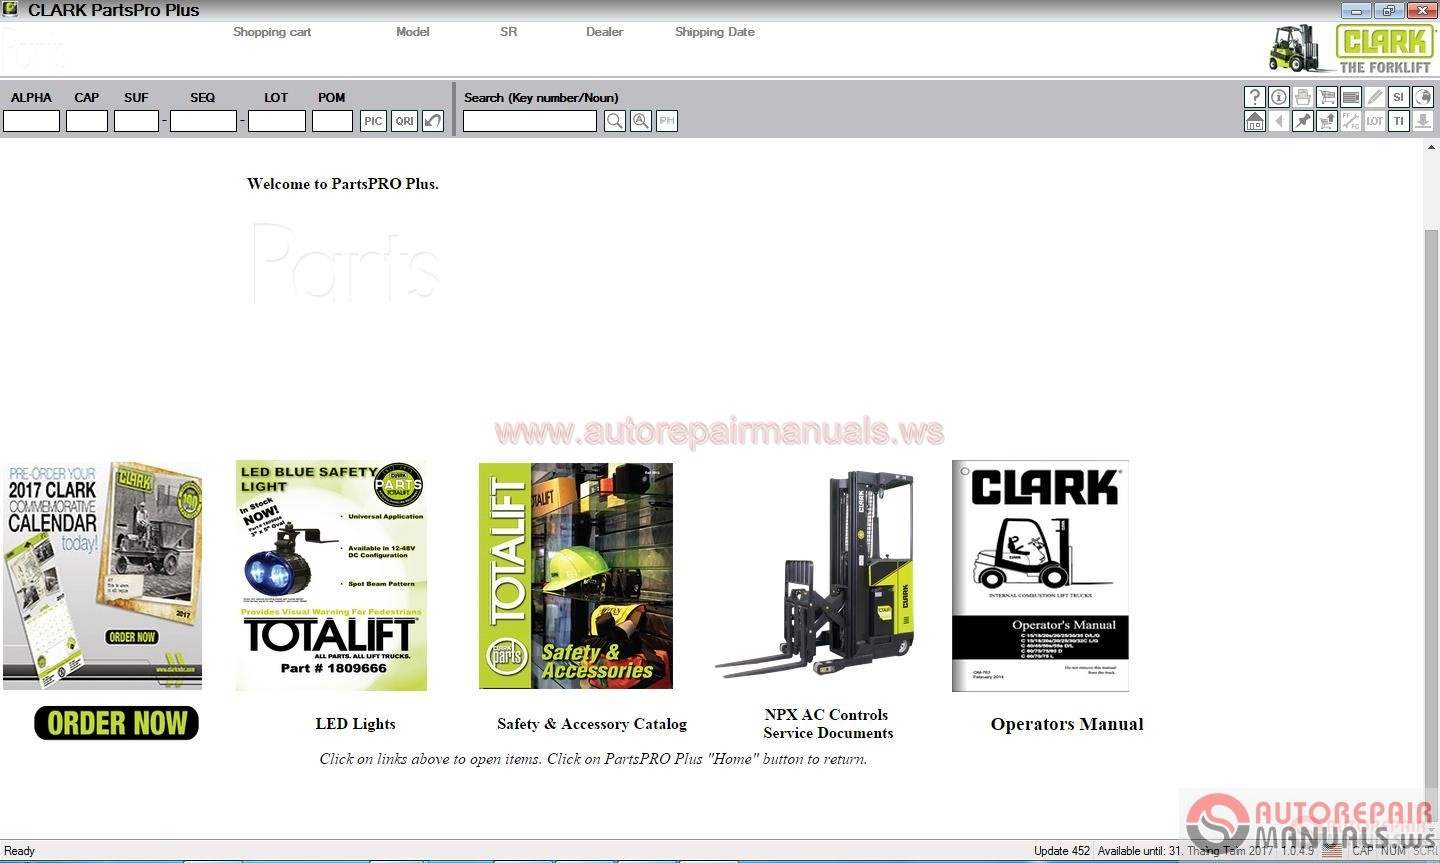 clark forklift parts pro plus v452  06 2017  full